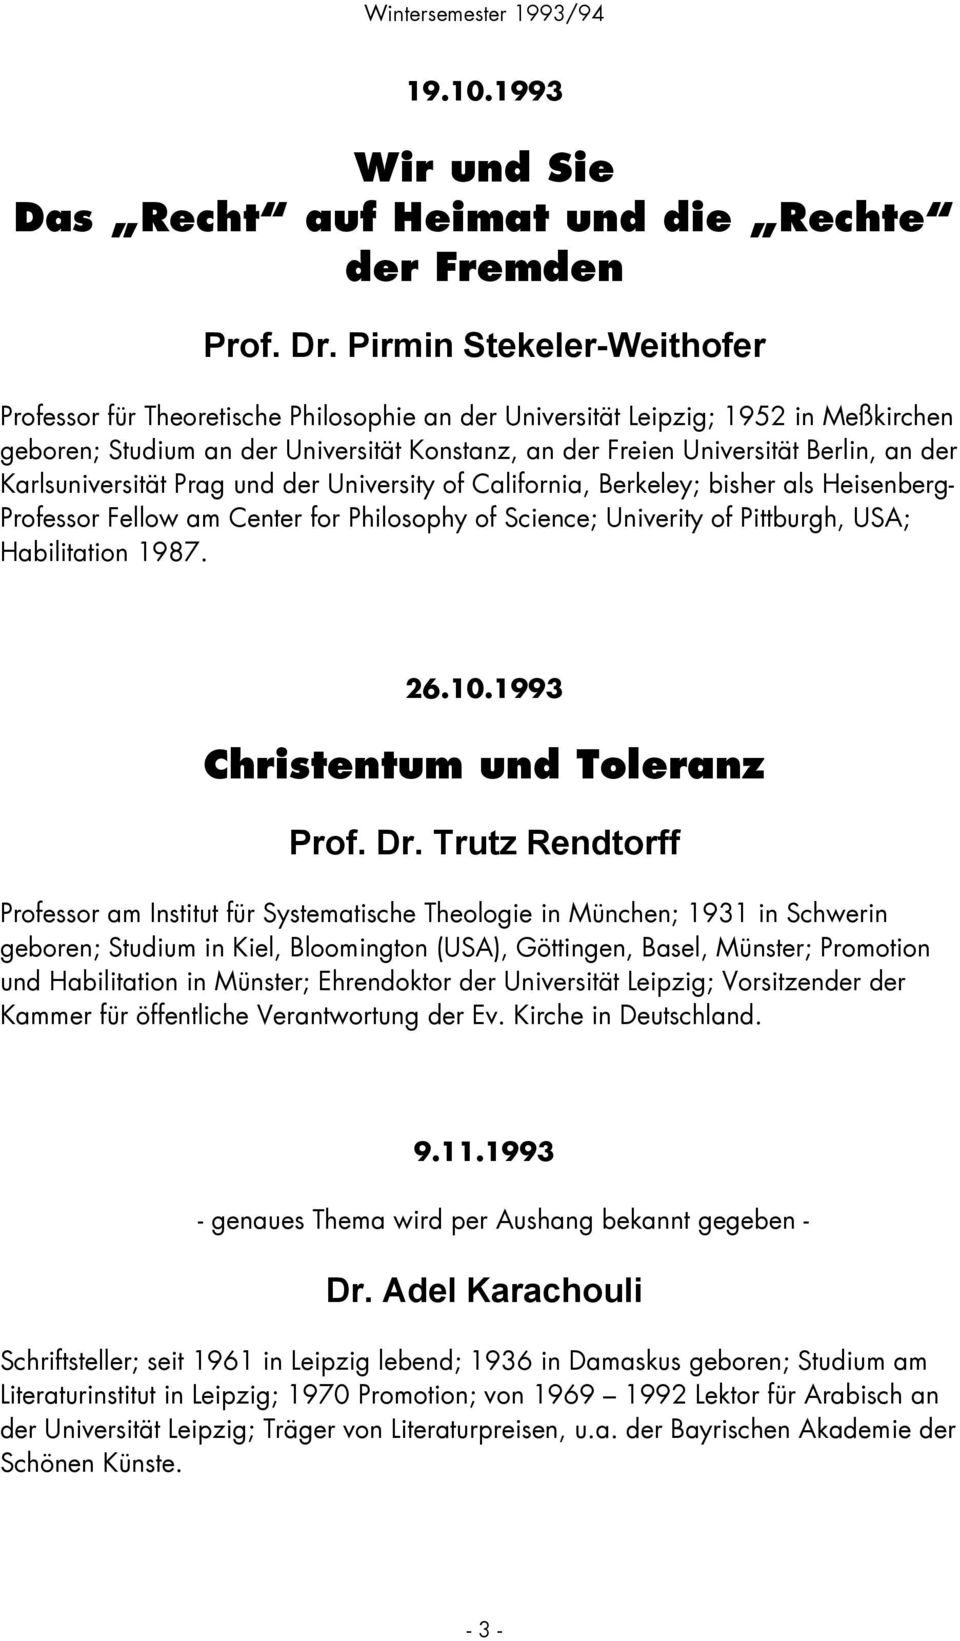 Karlsuniversität Prag und der University of California, Berkeley; bisher als Heisenberg- Professor Fellow am Center for Philosophy of Science; Univerity of Pittburgh, USA; Habilitation 1987. 26.10.